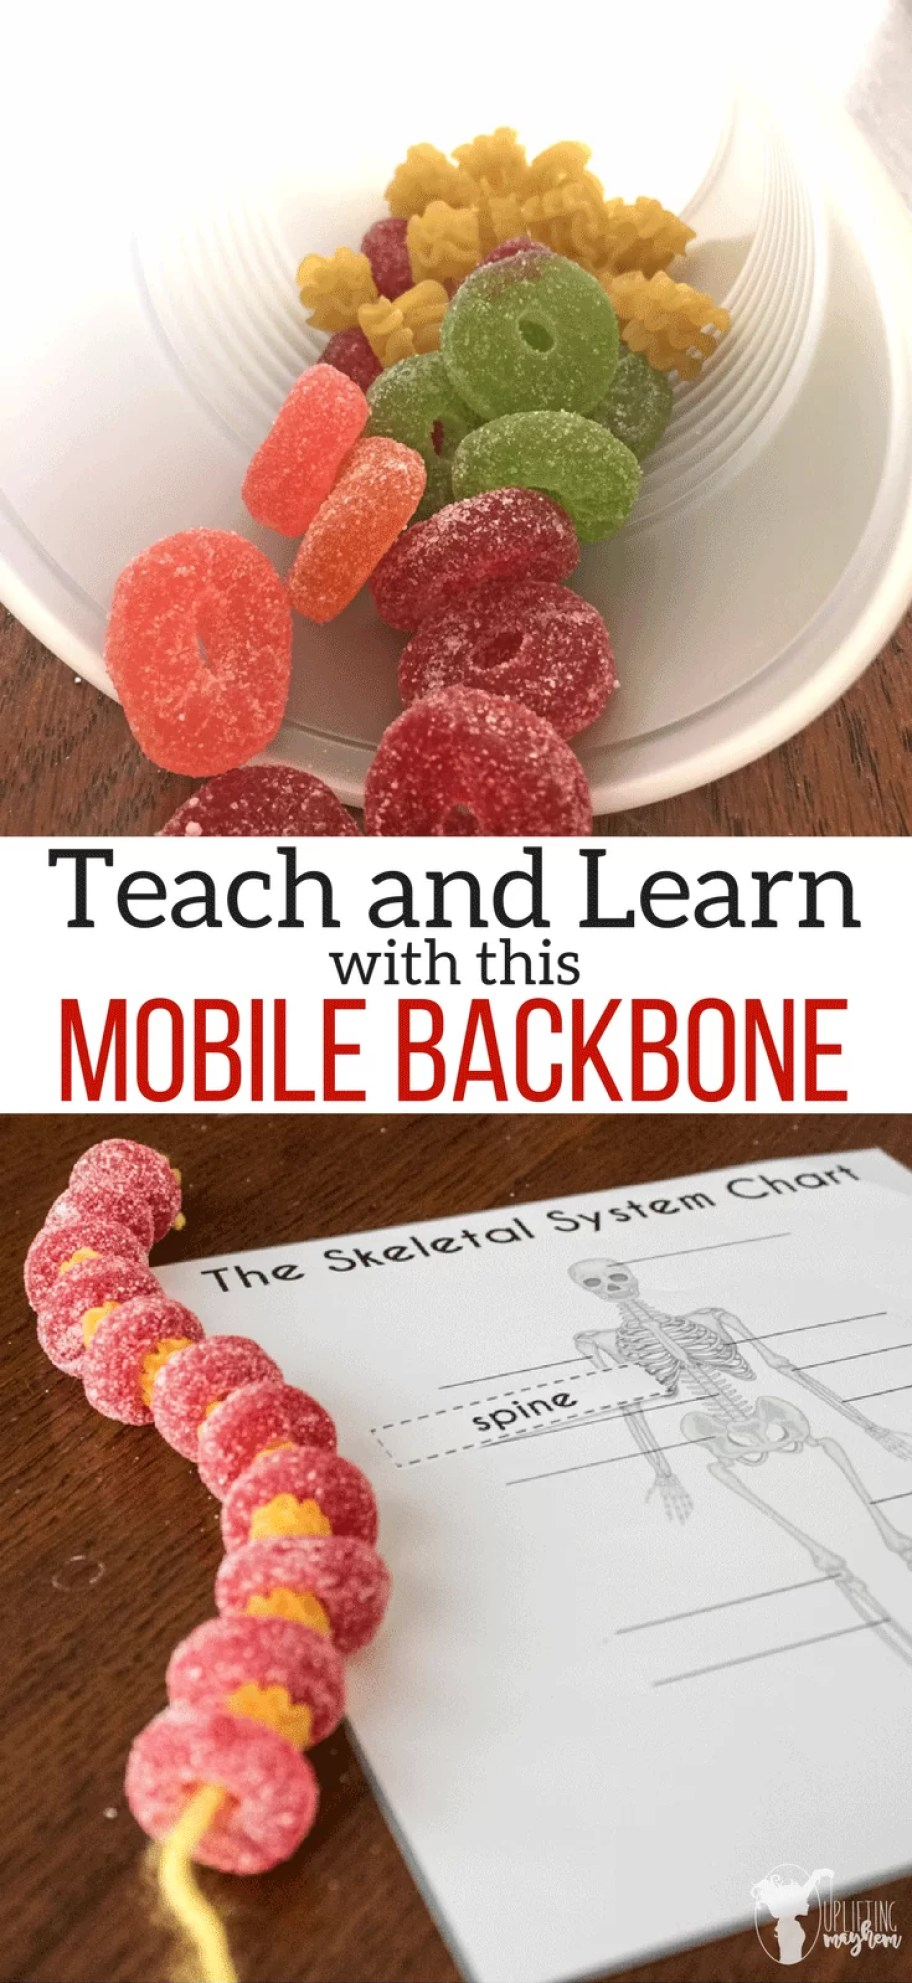 DIY MOBILE BACKBONE